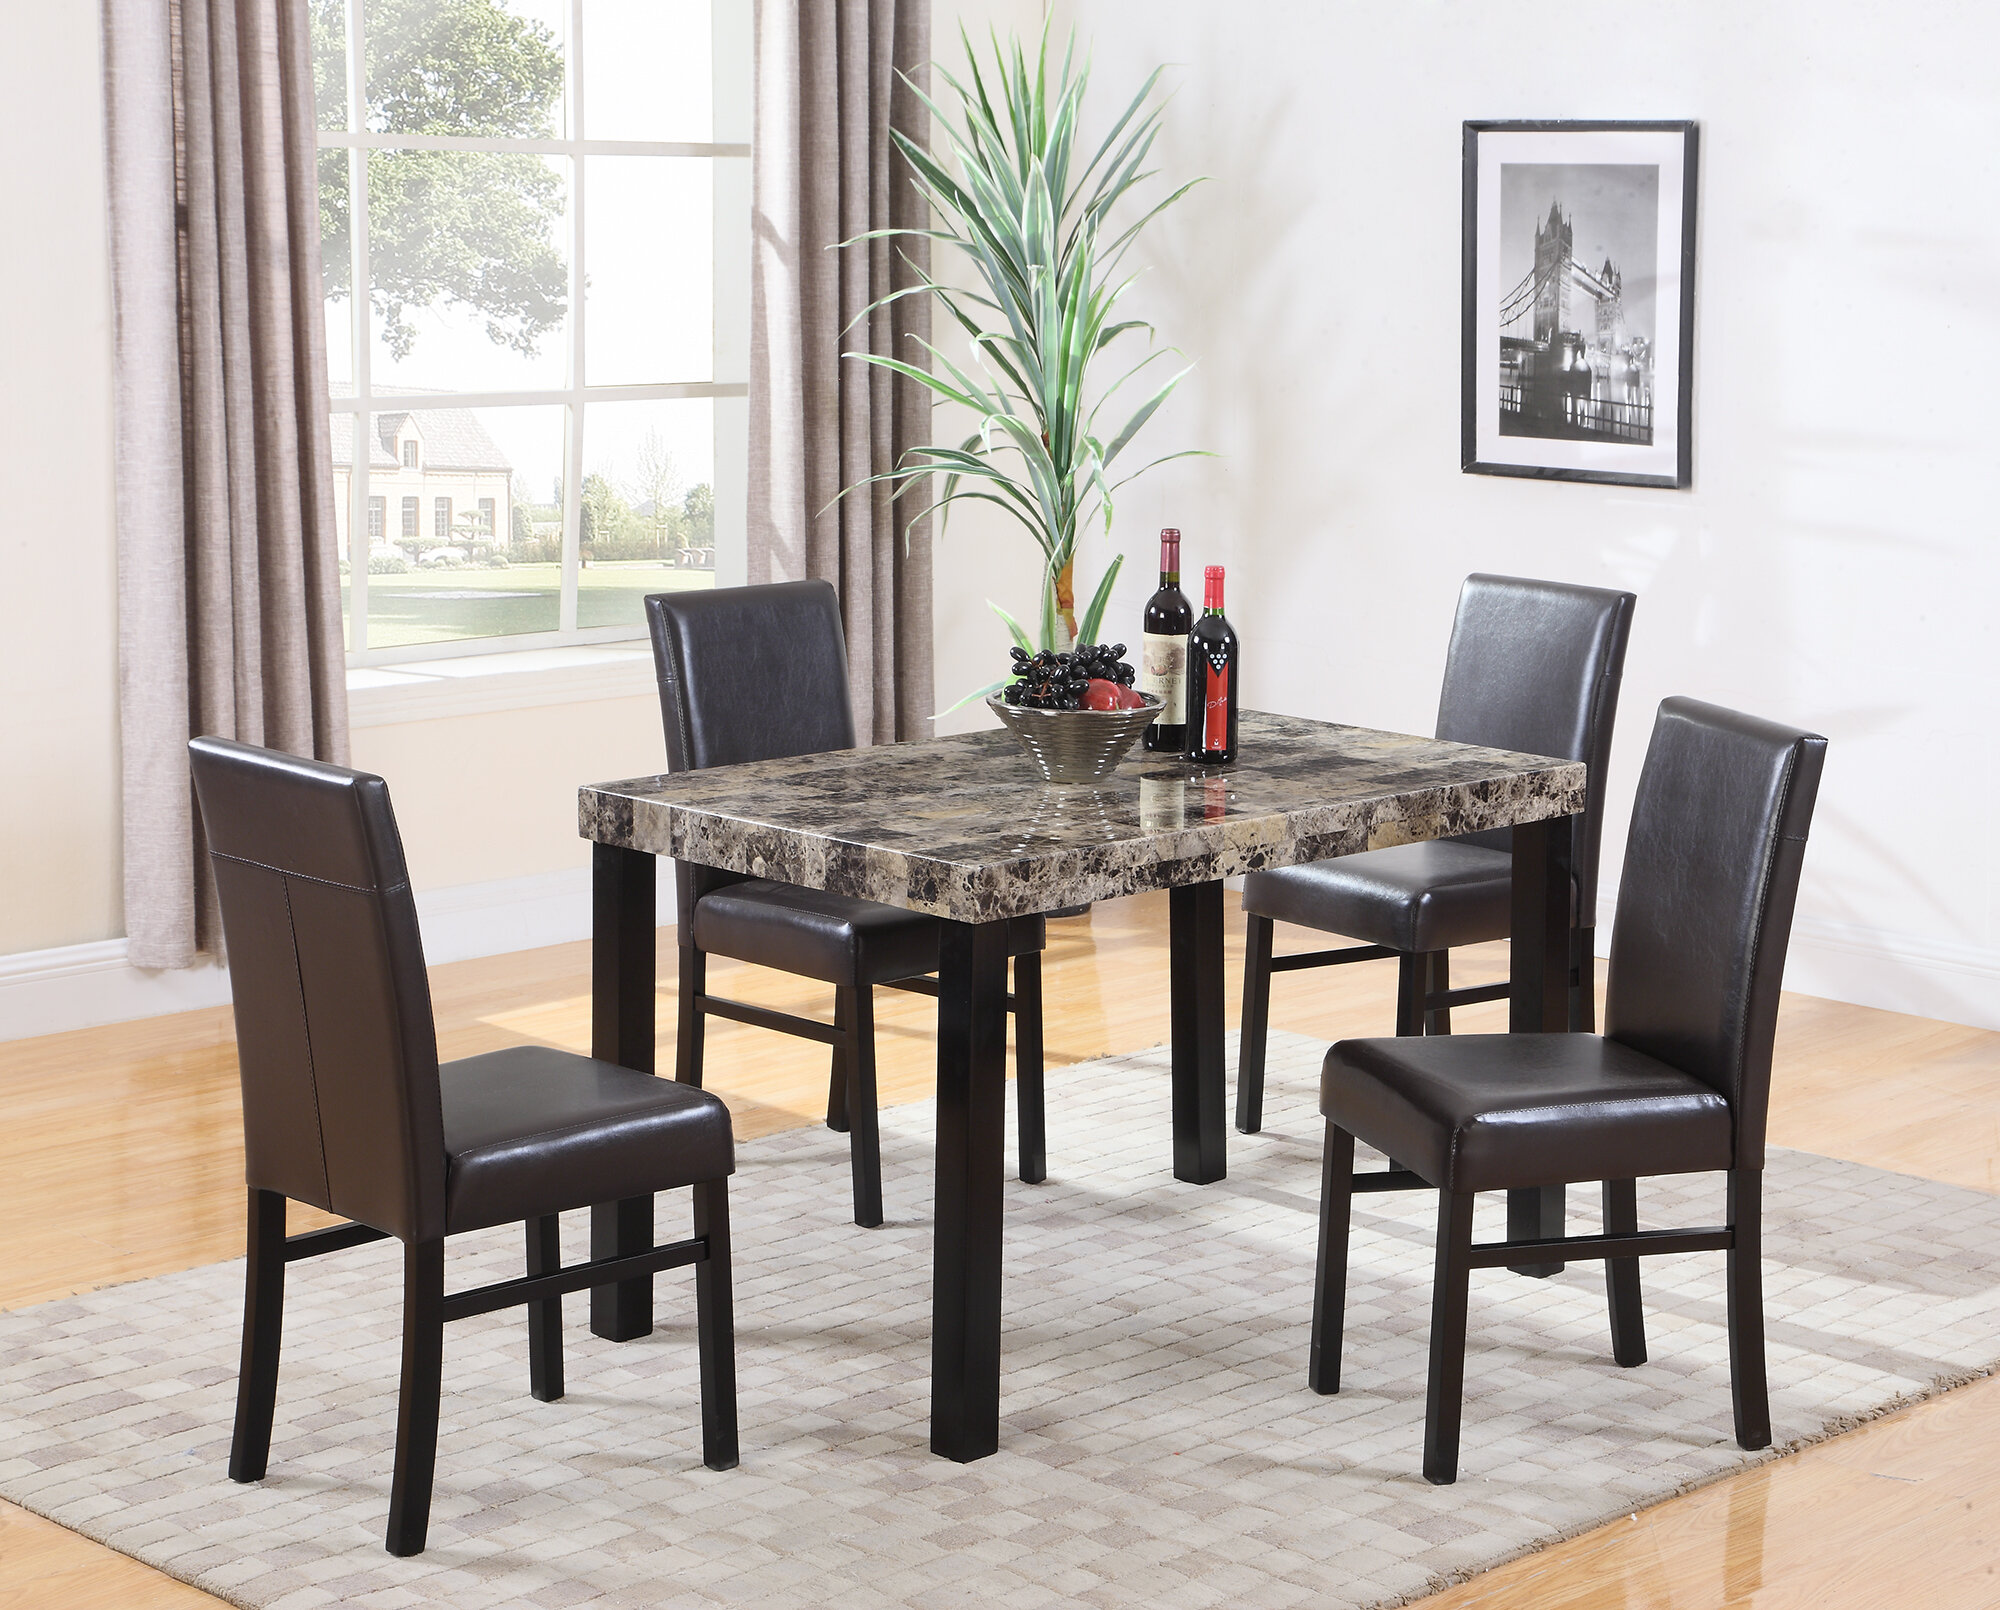 Loiseau 5 Piece Dining Set